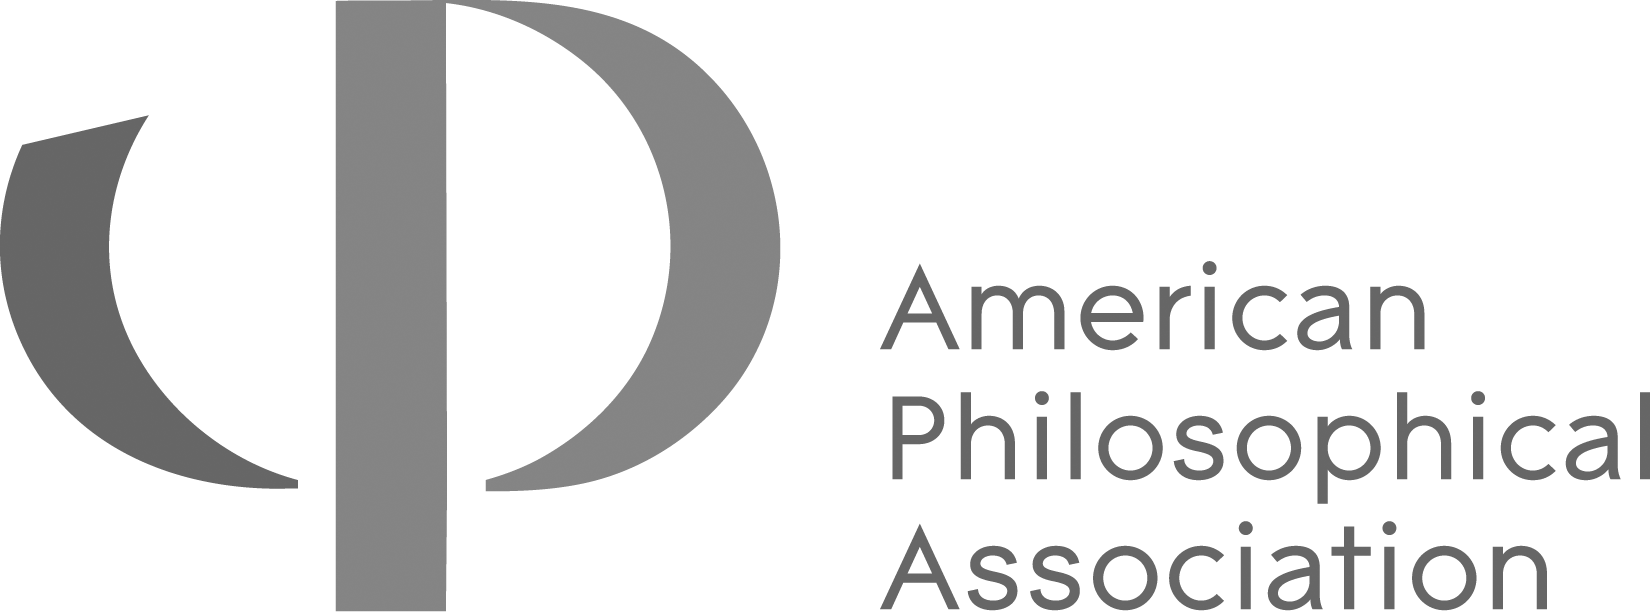 American Philosophical Association logo